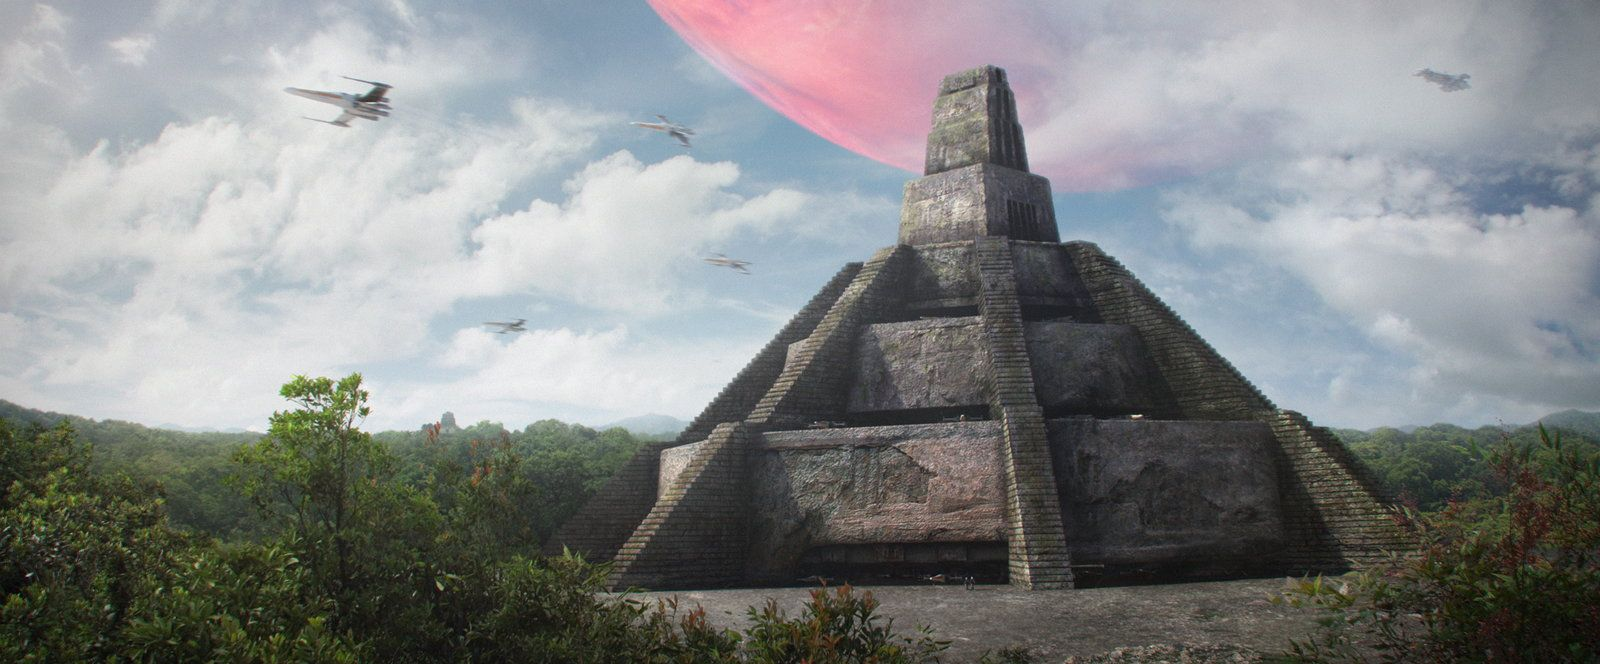 Great Temple Of Yavin 4 Saby Menyhei Star Wars Concept Art Star Wars Photo